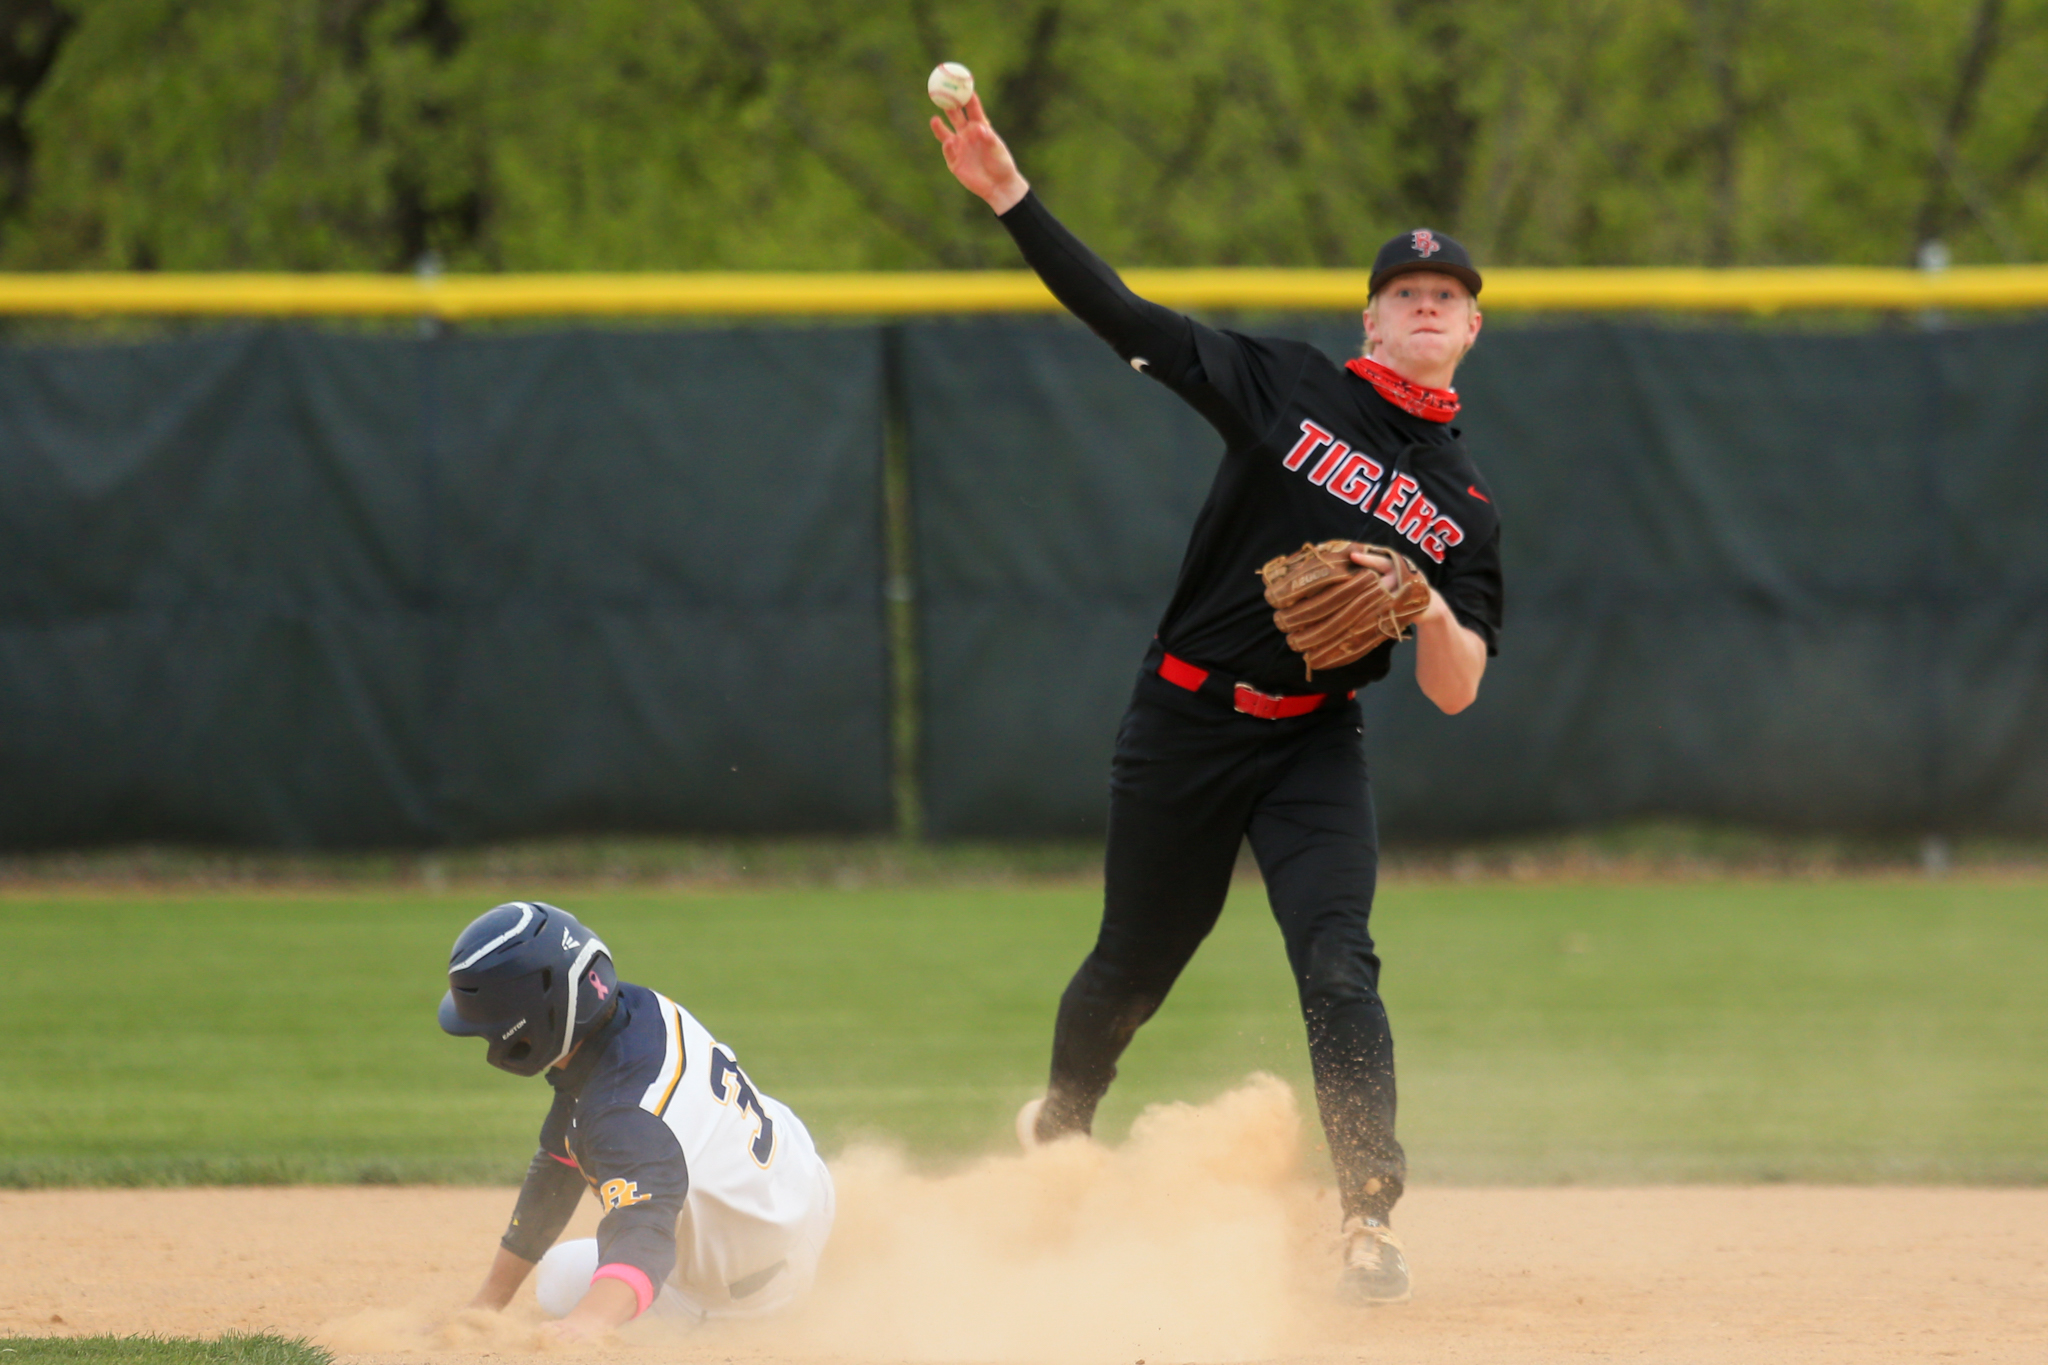 Belle Plaine second baseman Jackson Kruger turns to make the throw to first base on a successful double play against Prior Lake. The Tigers fell to the Lakers 9-2 Saturday evening at Memorial Park in Prior Lake. Photo by Jeff Lawler, SportsEngine